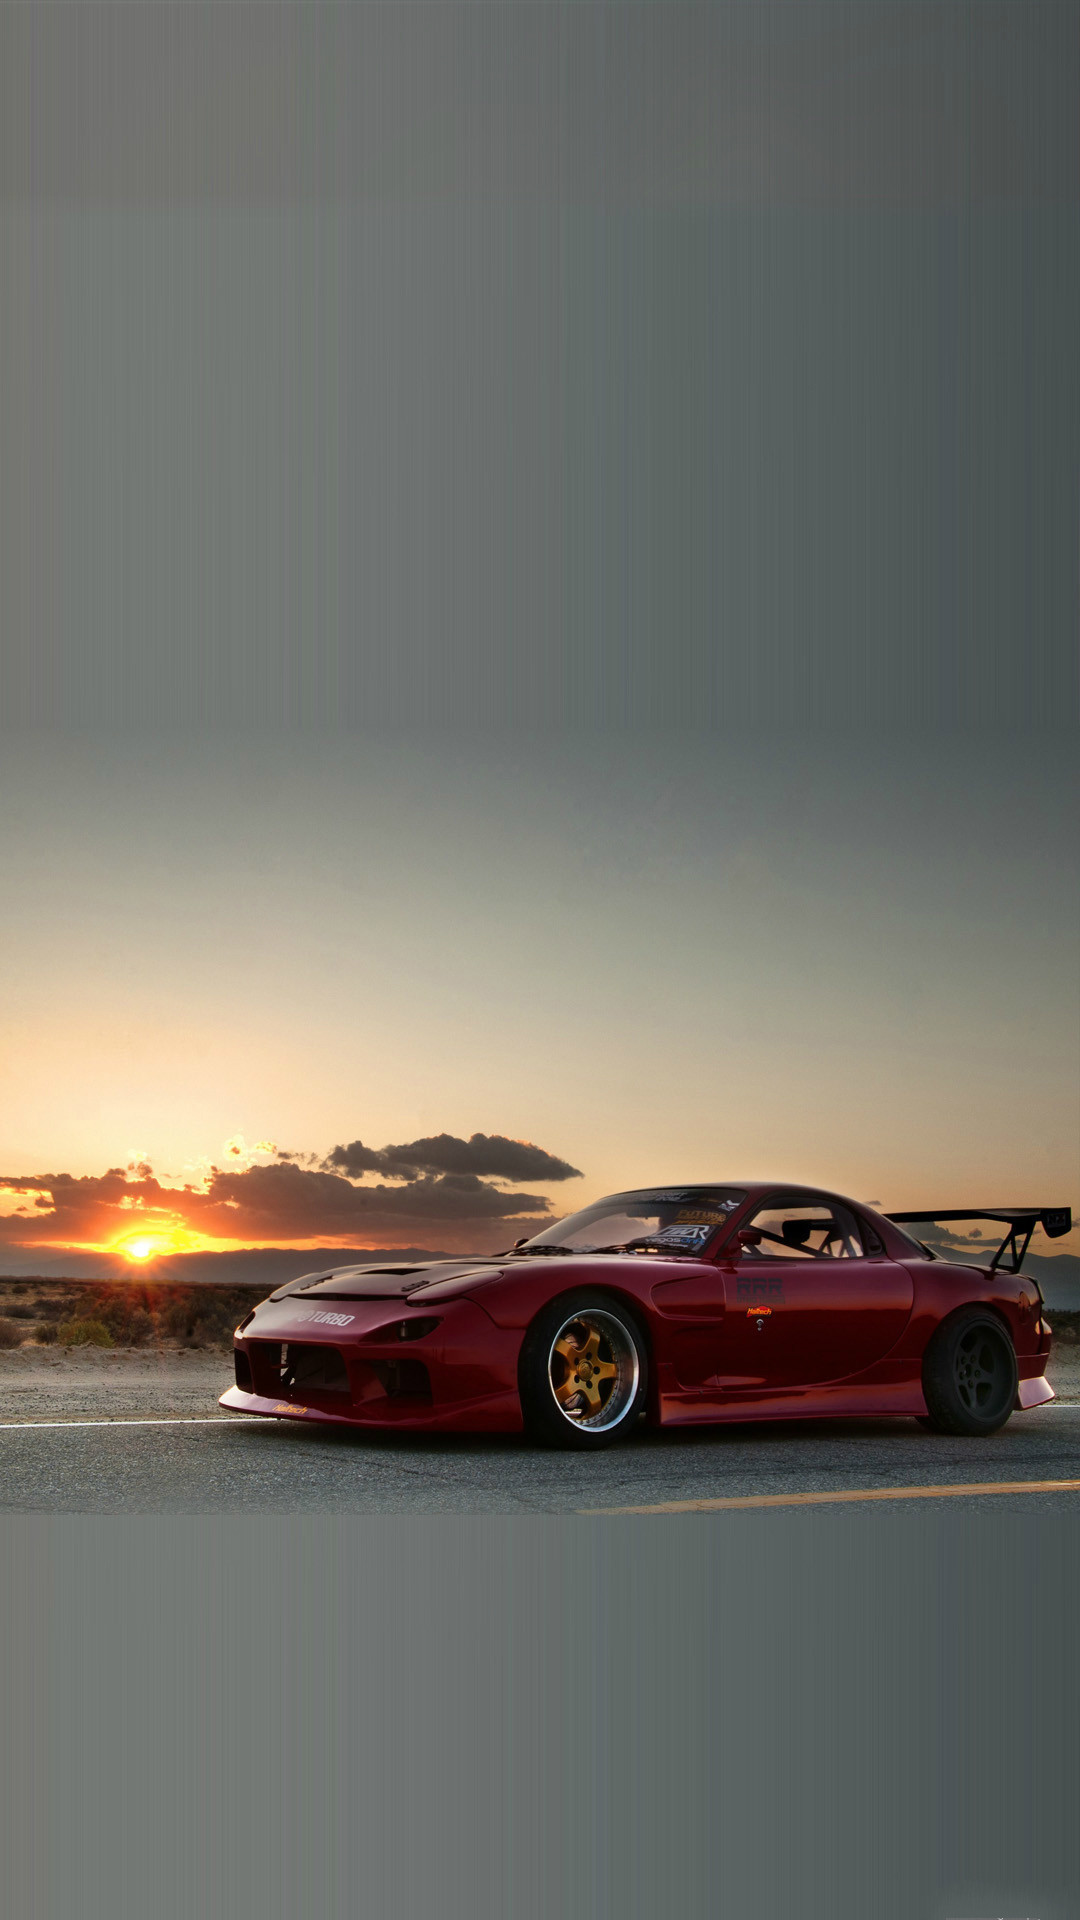 Best Car Drifting Wallpapers Rx7 Wallpaper 56 Images